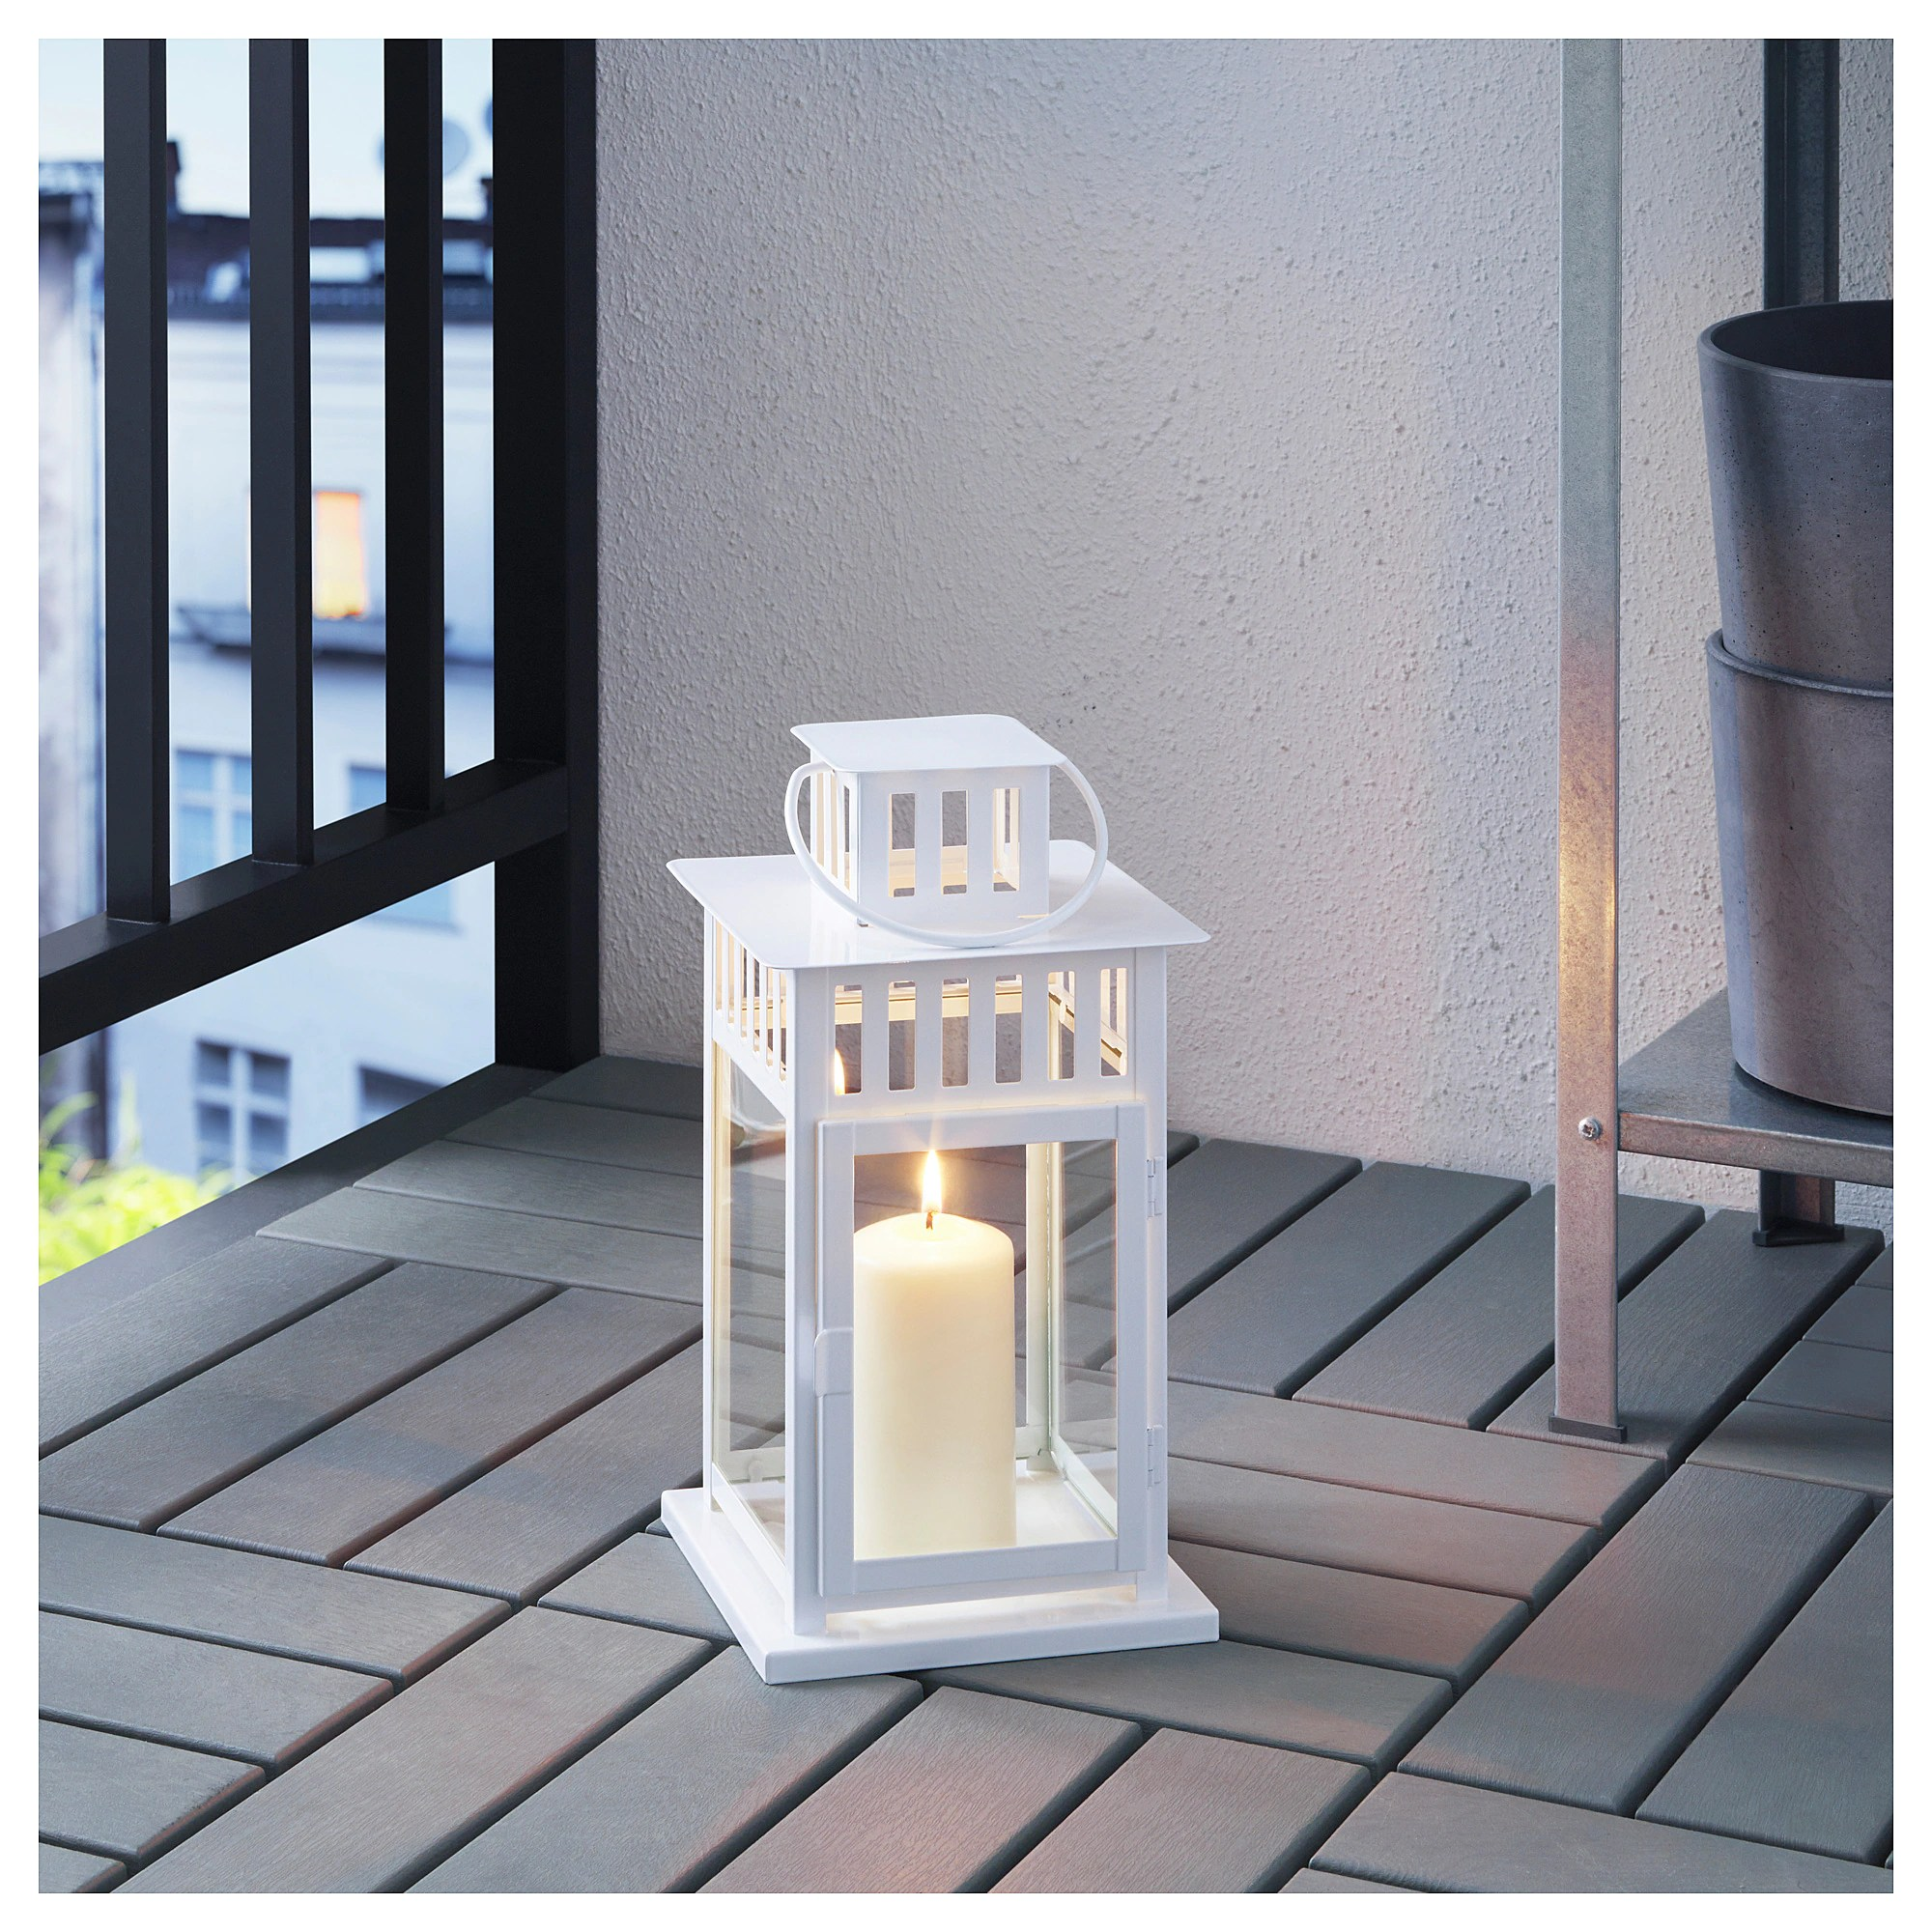 Photophore Ikea Ikea Borrby New White Steel Lantern For Bloc Candles Home Garden